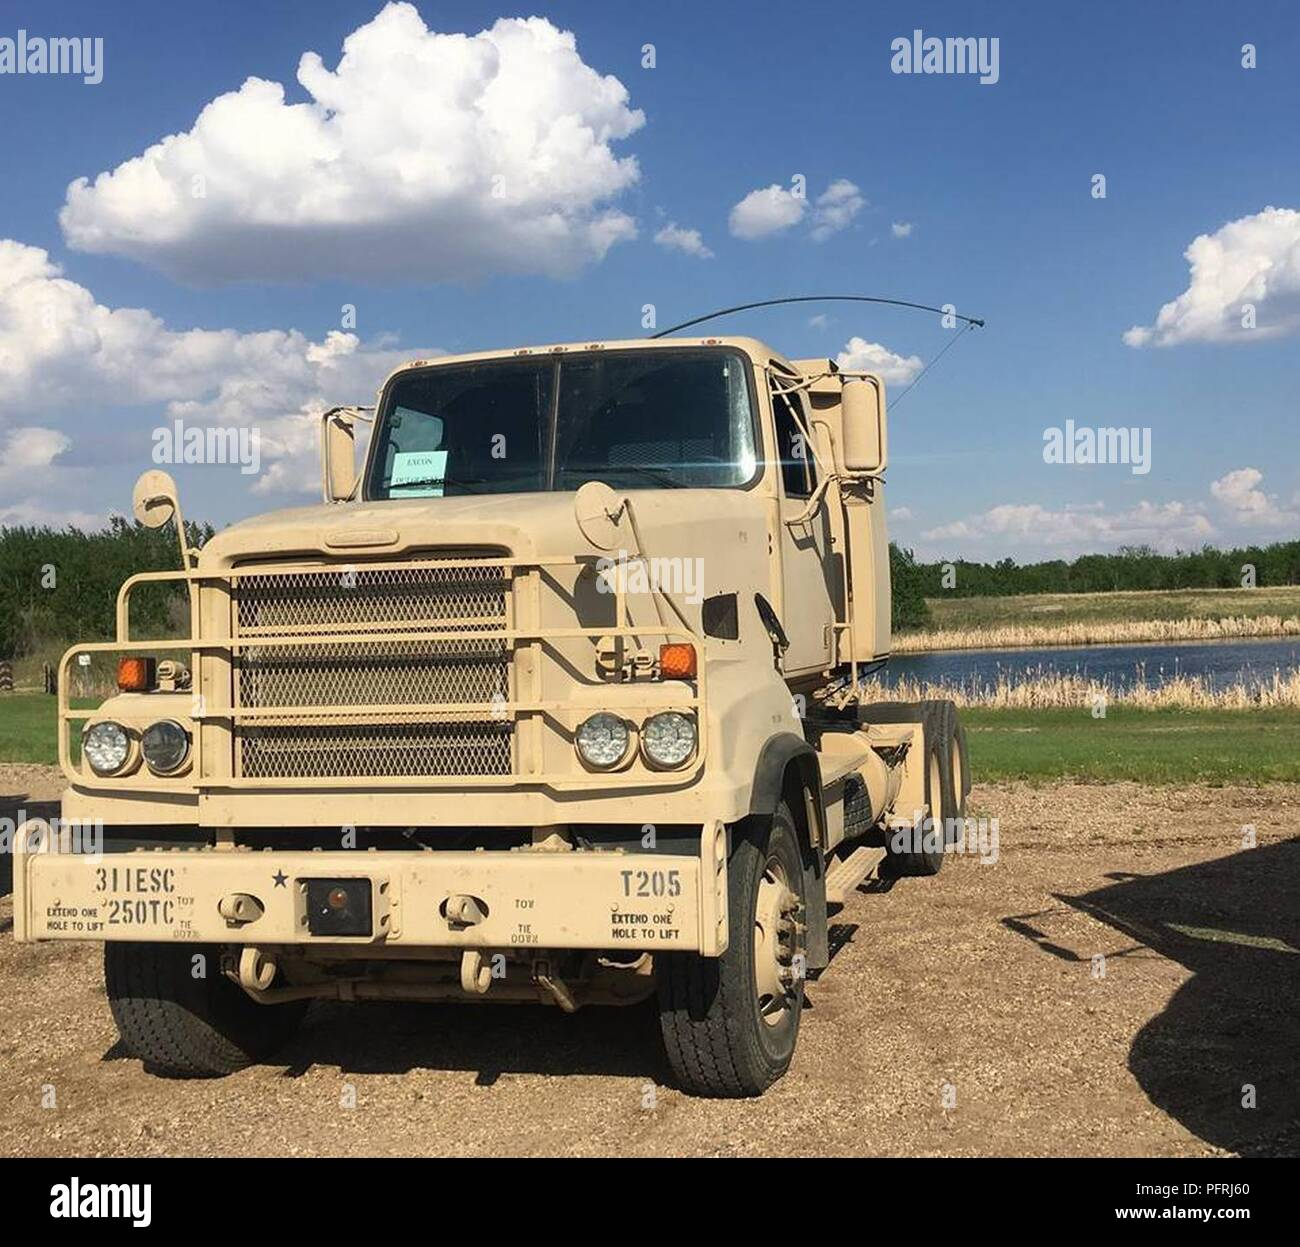 An M915A5 belonging to the U.S. Army Reserve 250th Transportation Company staged next to a lake at the Canadian Manoeuvre Training Centre, Wainwright, Alberta, Canada. - Stock Image